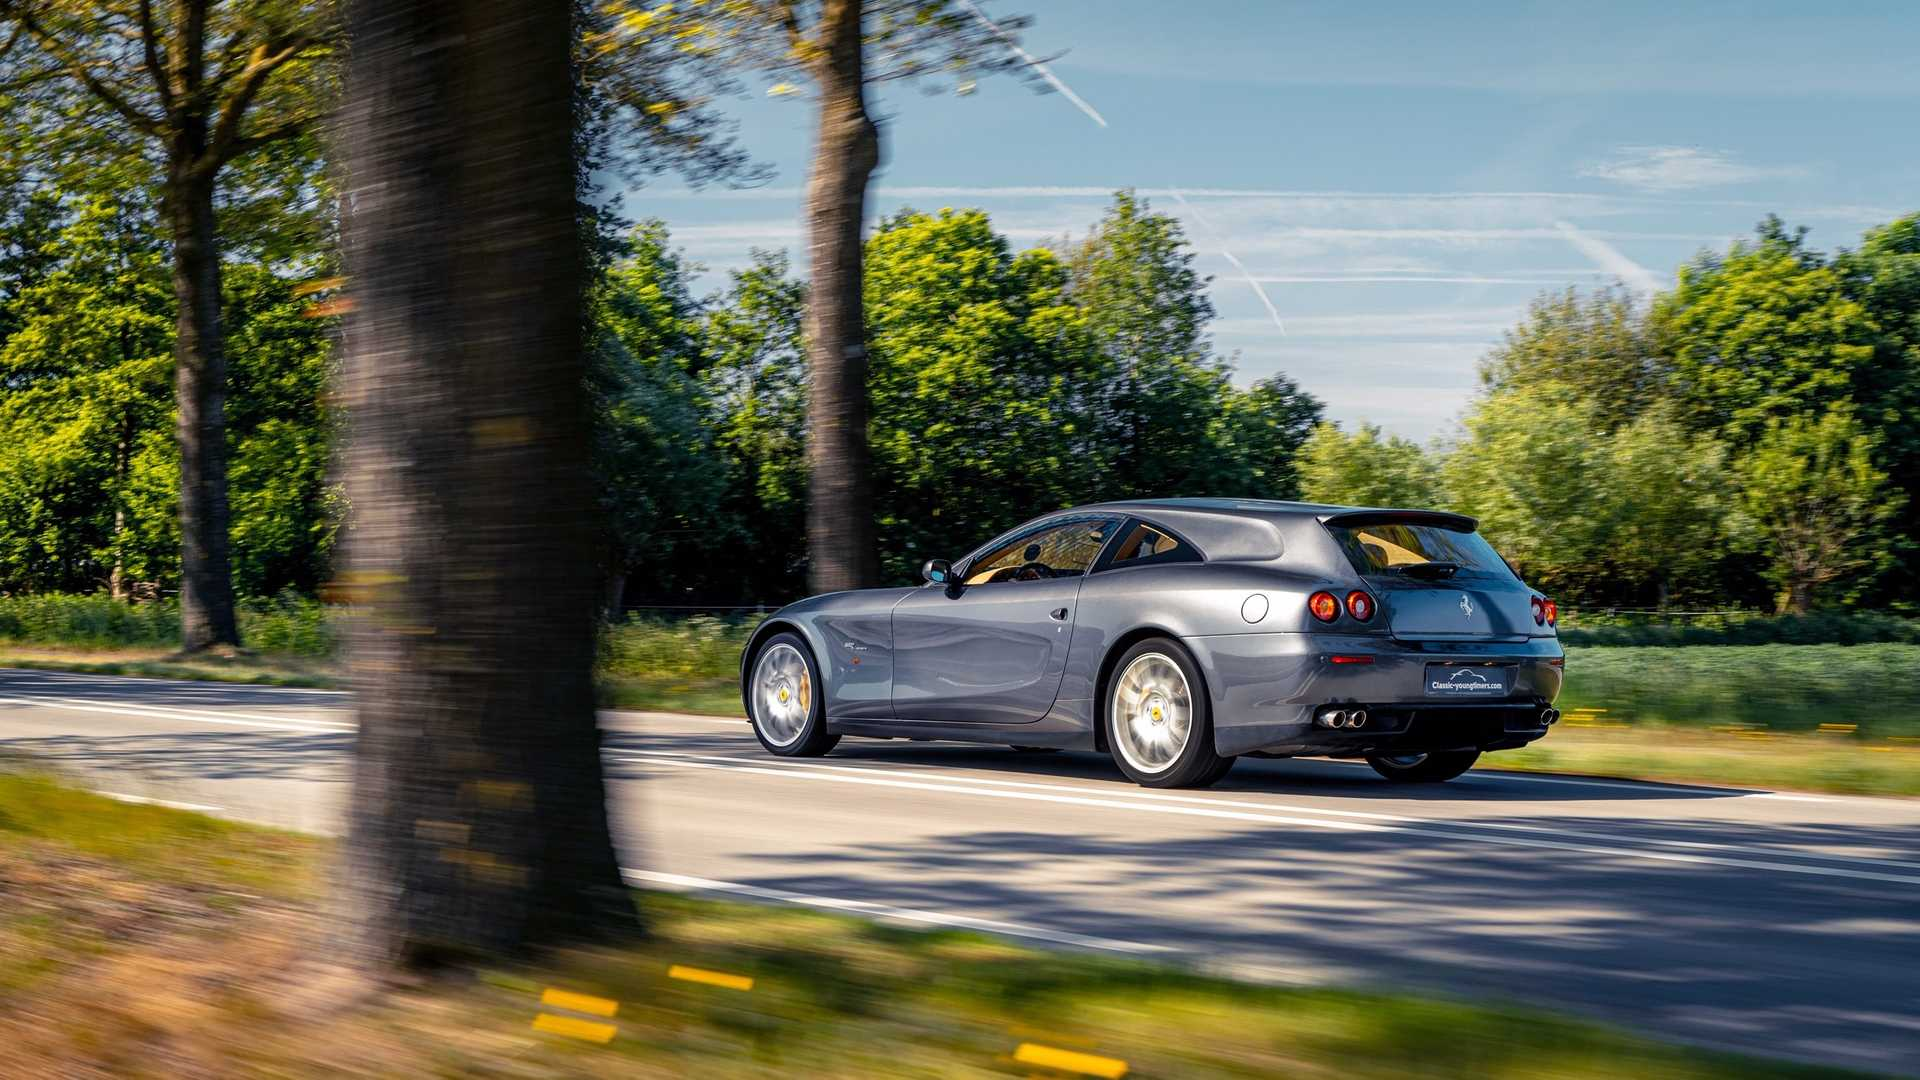 Ferrari-612-Scaglietti-Shooting-Brake-by-Vandenbrink-6